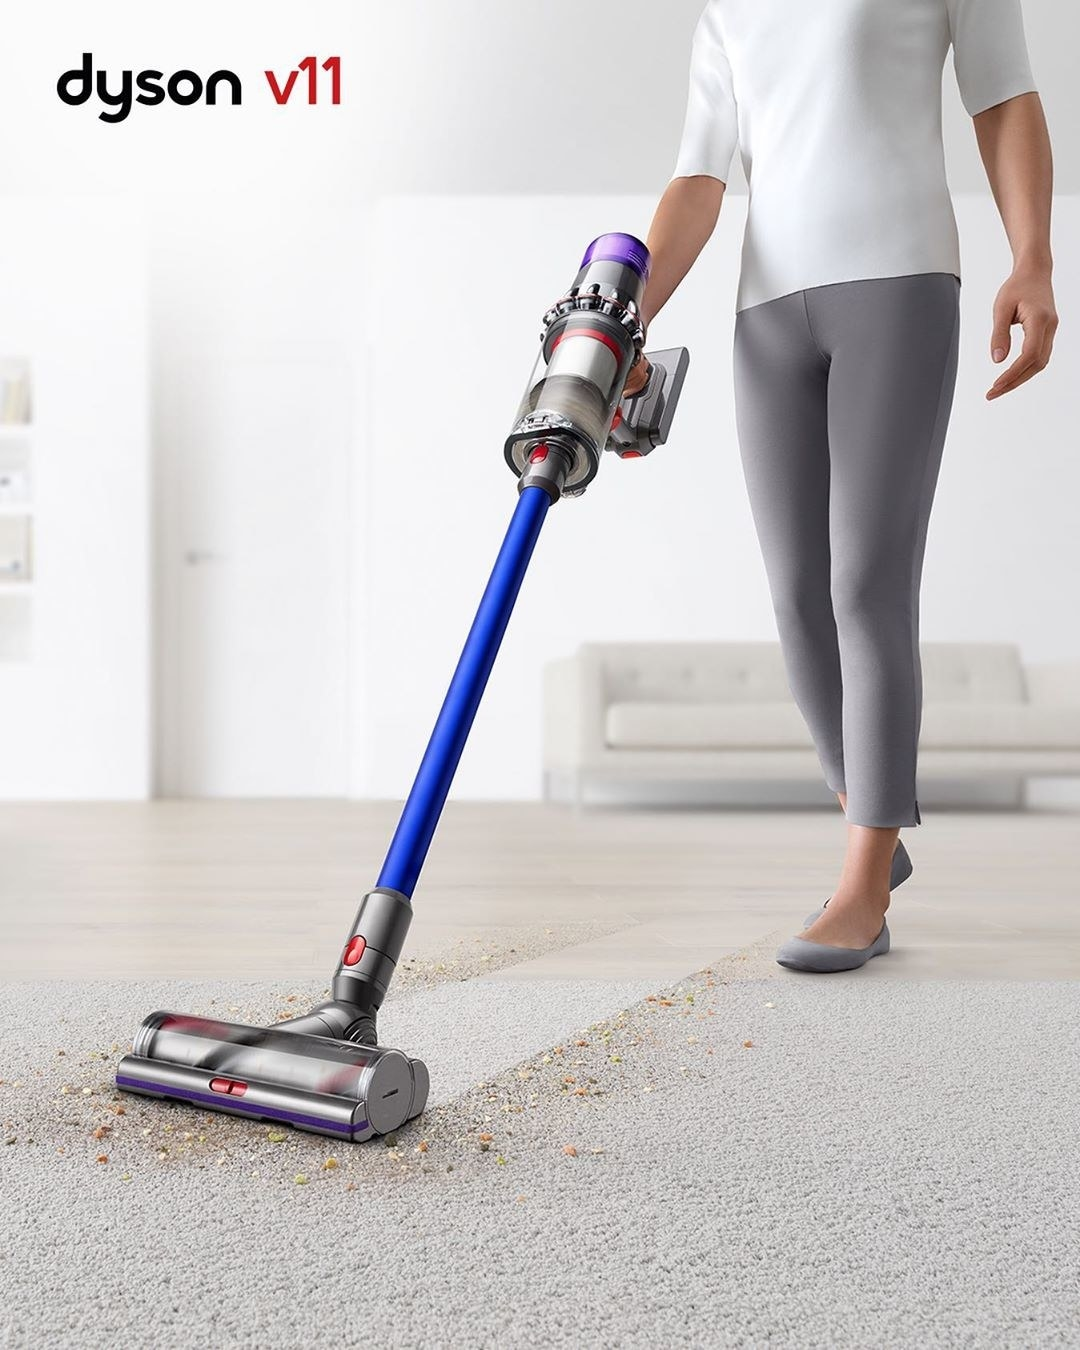 a model using the dyson v11 vacuum